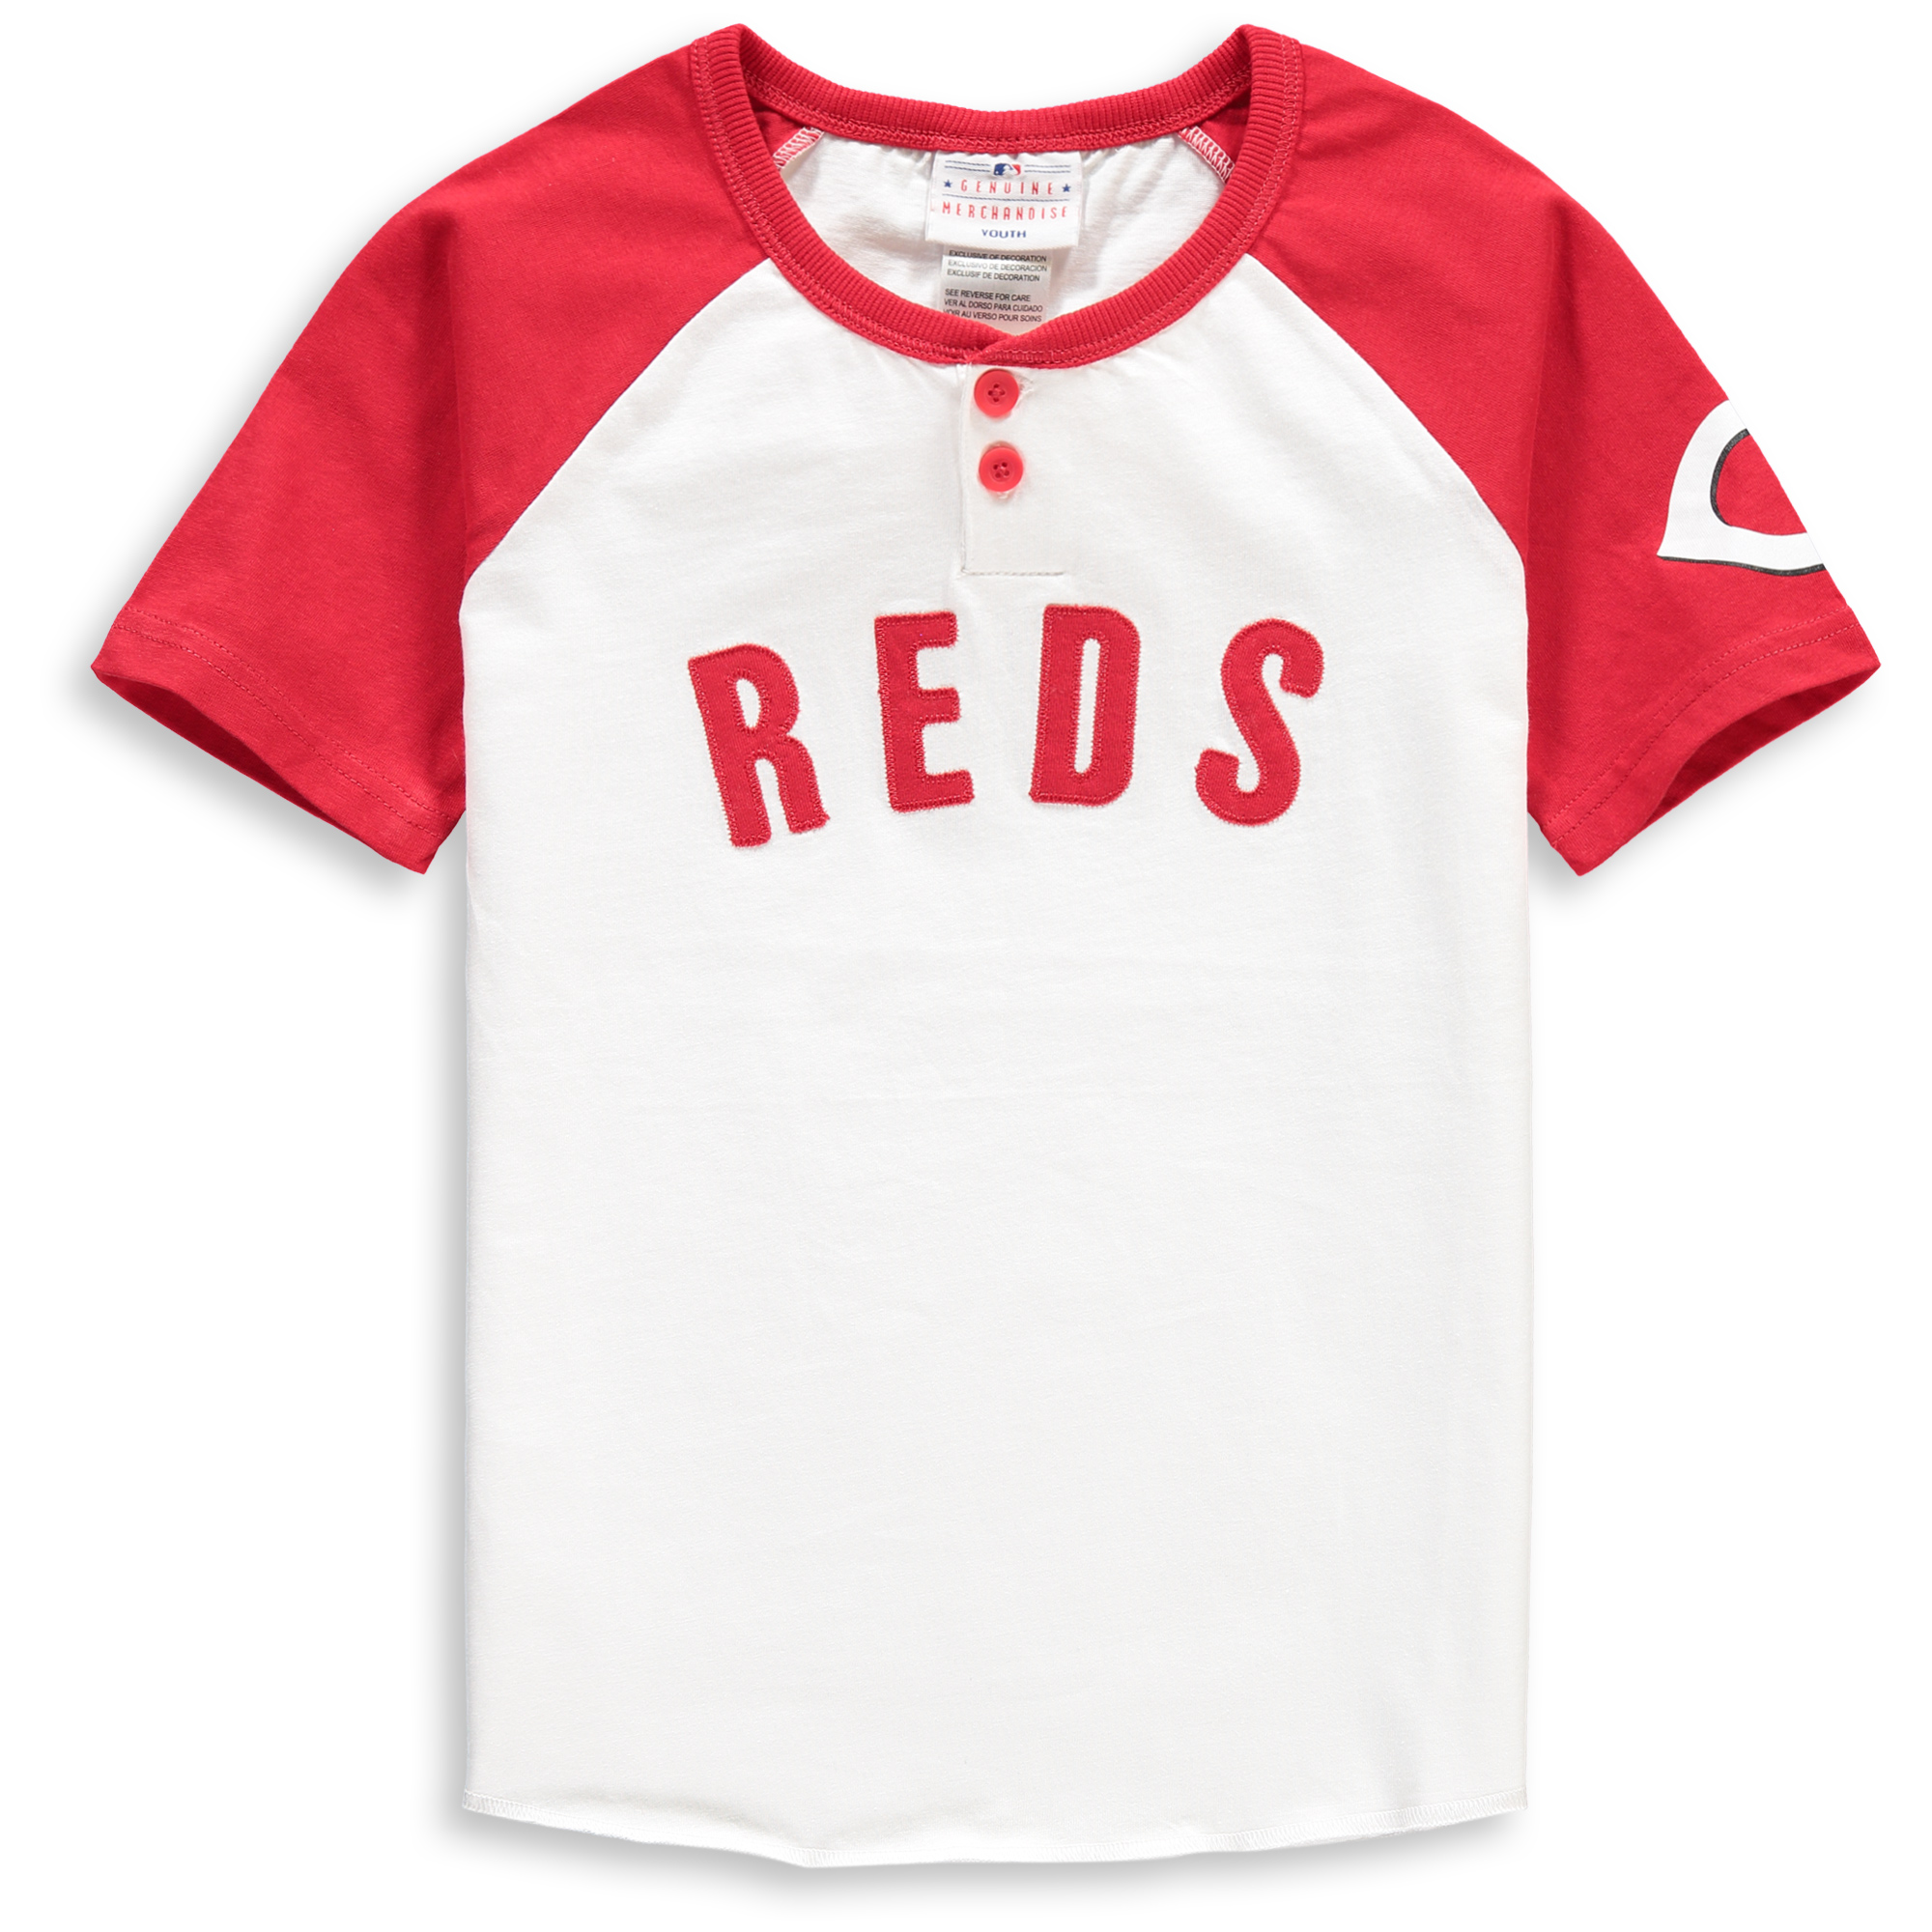 Cincinnati Reds Youth Game Day Jersey T-Shirt - White/Red